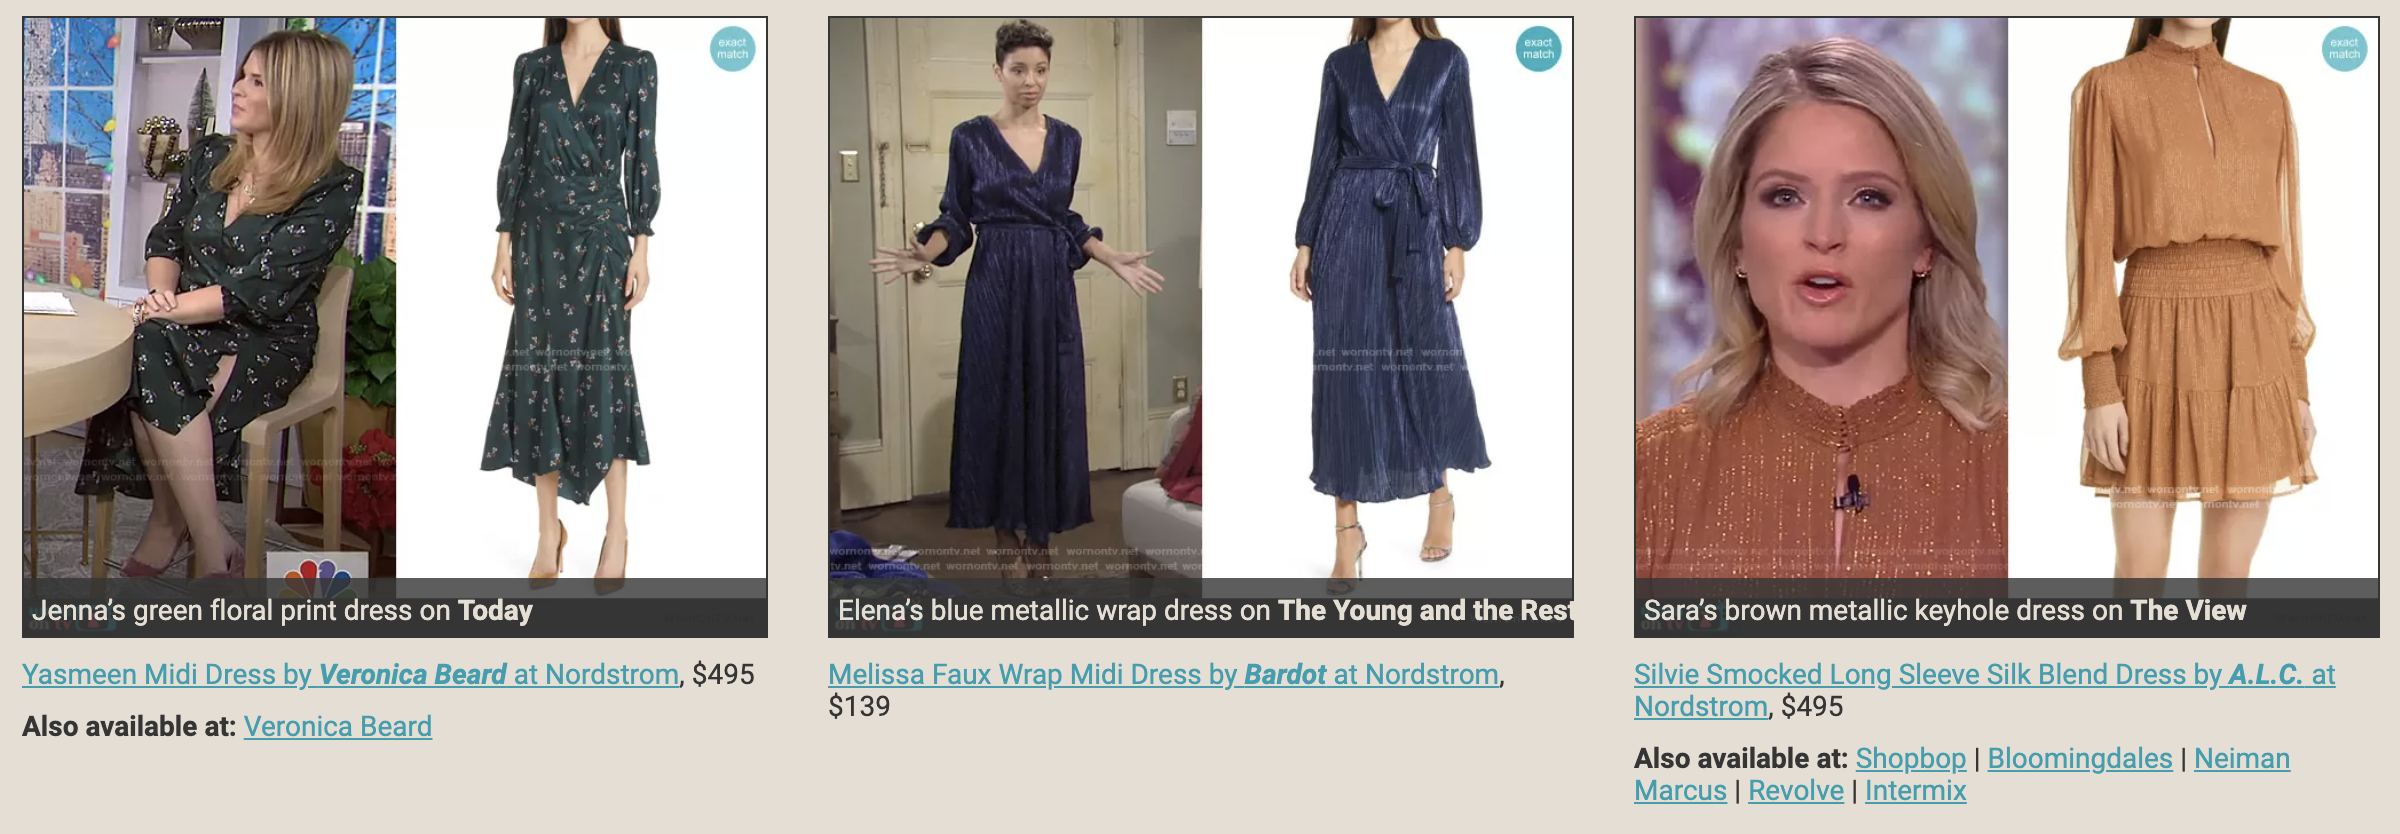 three different women in dresses with stock photos of the dresses next to them